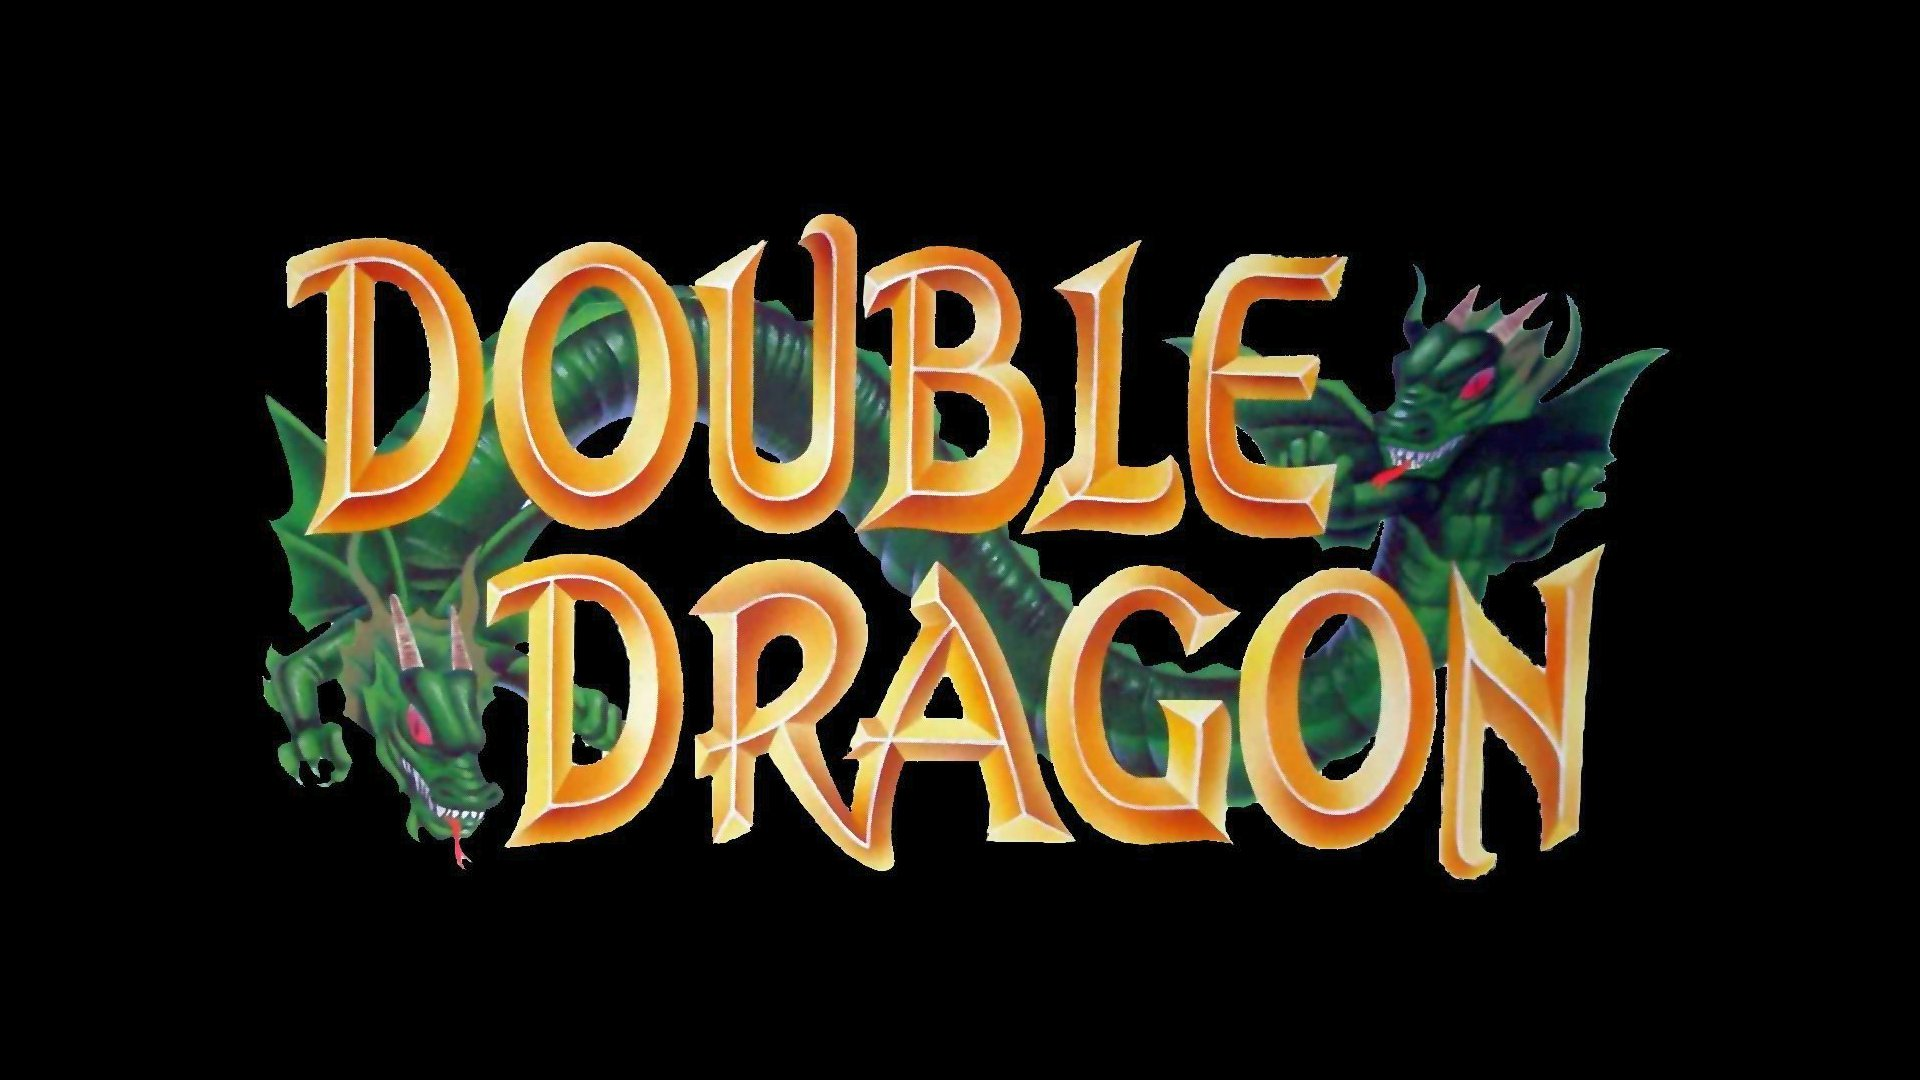 77+] Double Dragon Wallpaper on WallpaperSafari.